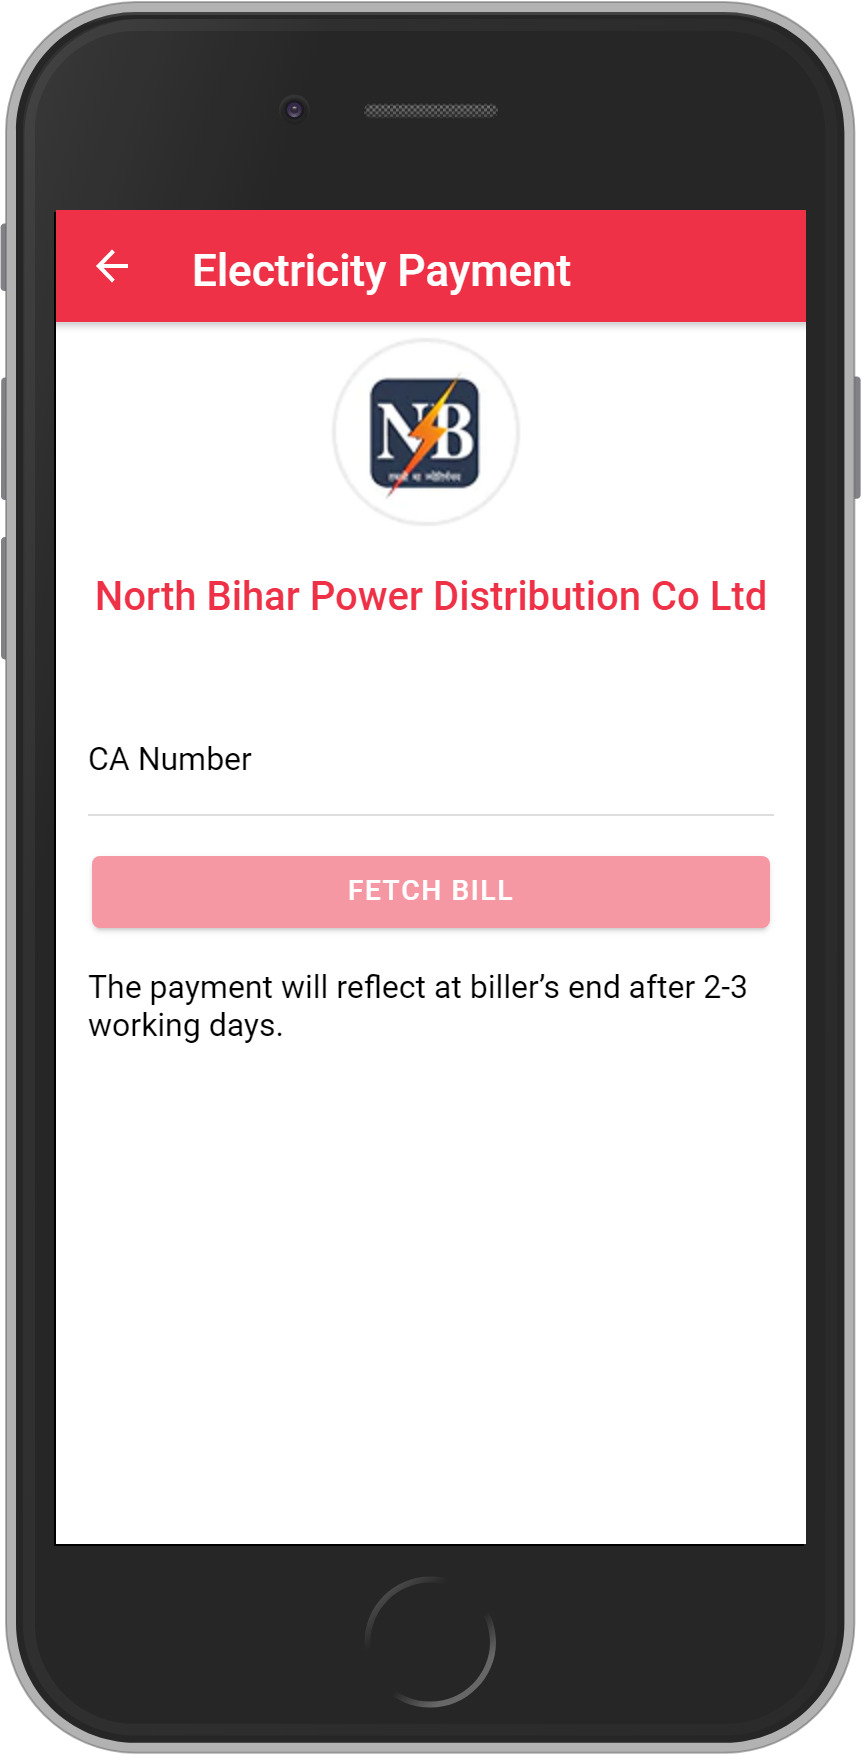 Get UNLIMITED <b>0.1%</b> CASHBACK on North Bihar Electricity Bill Payment.